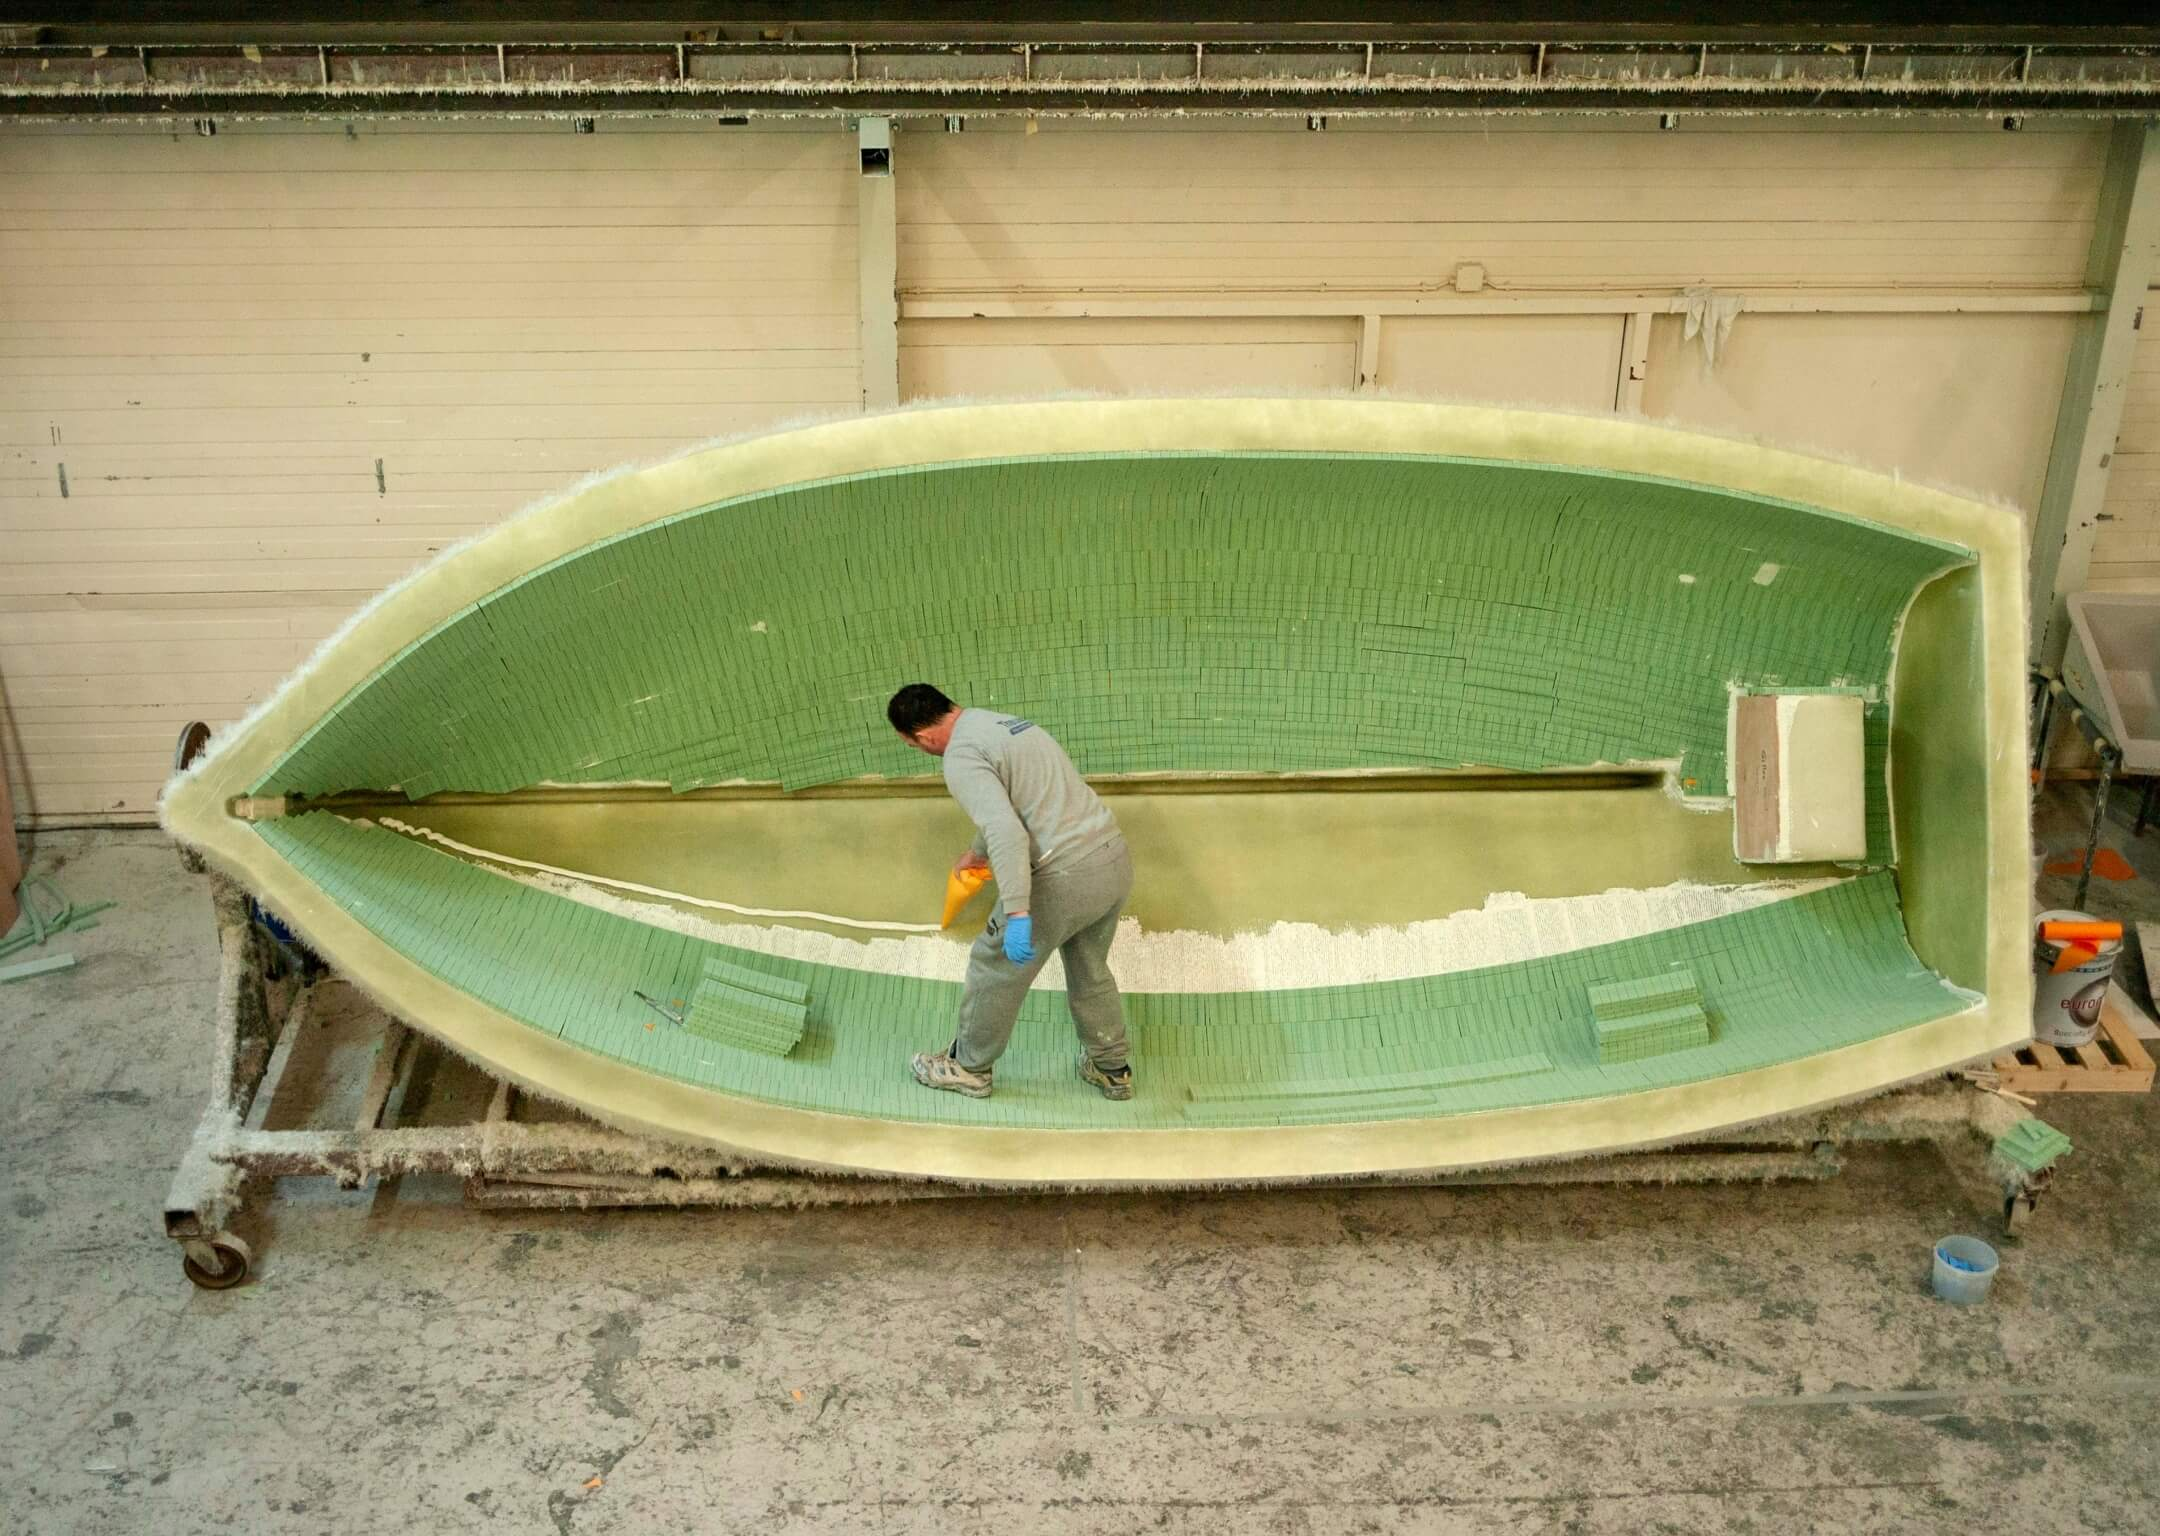 Boat for NGO Plastic Whale by Hamish Duncan on a Leica M Series